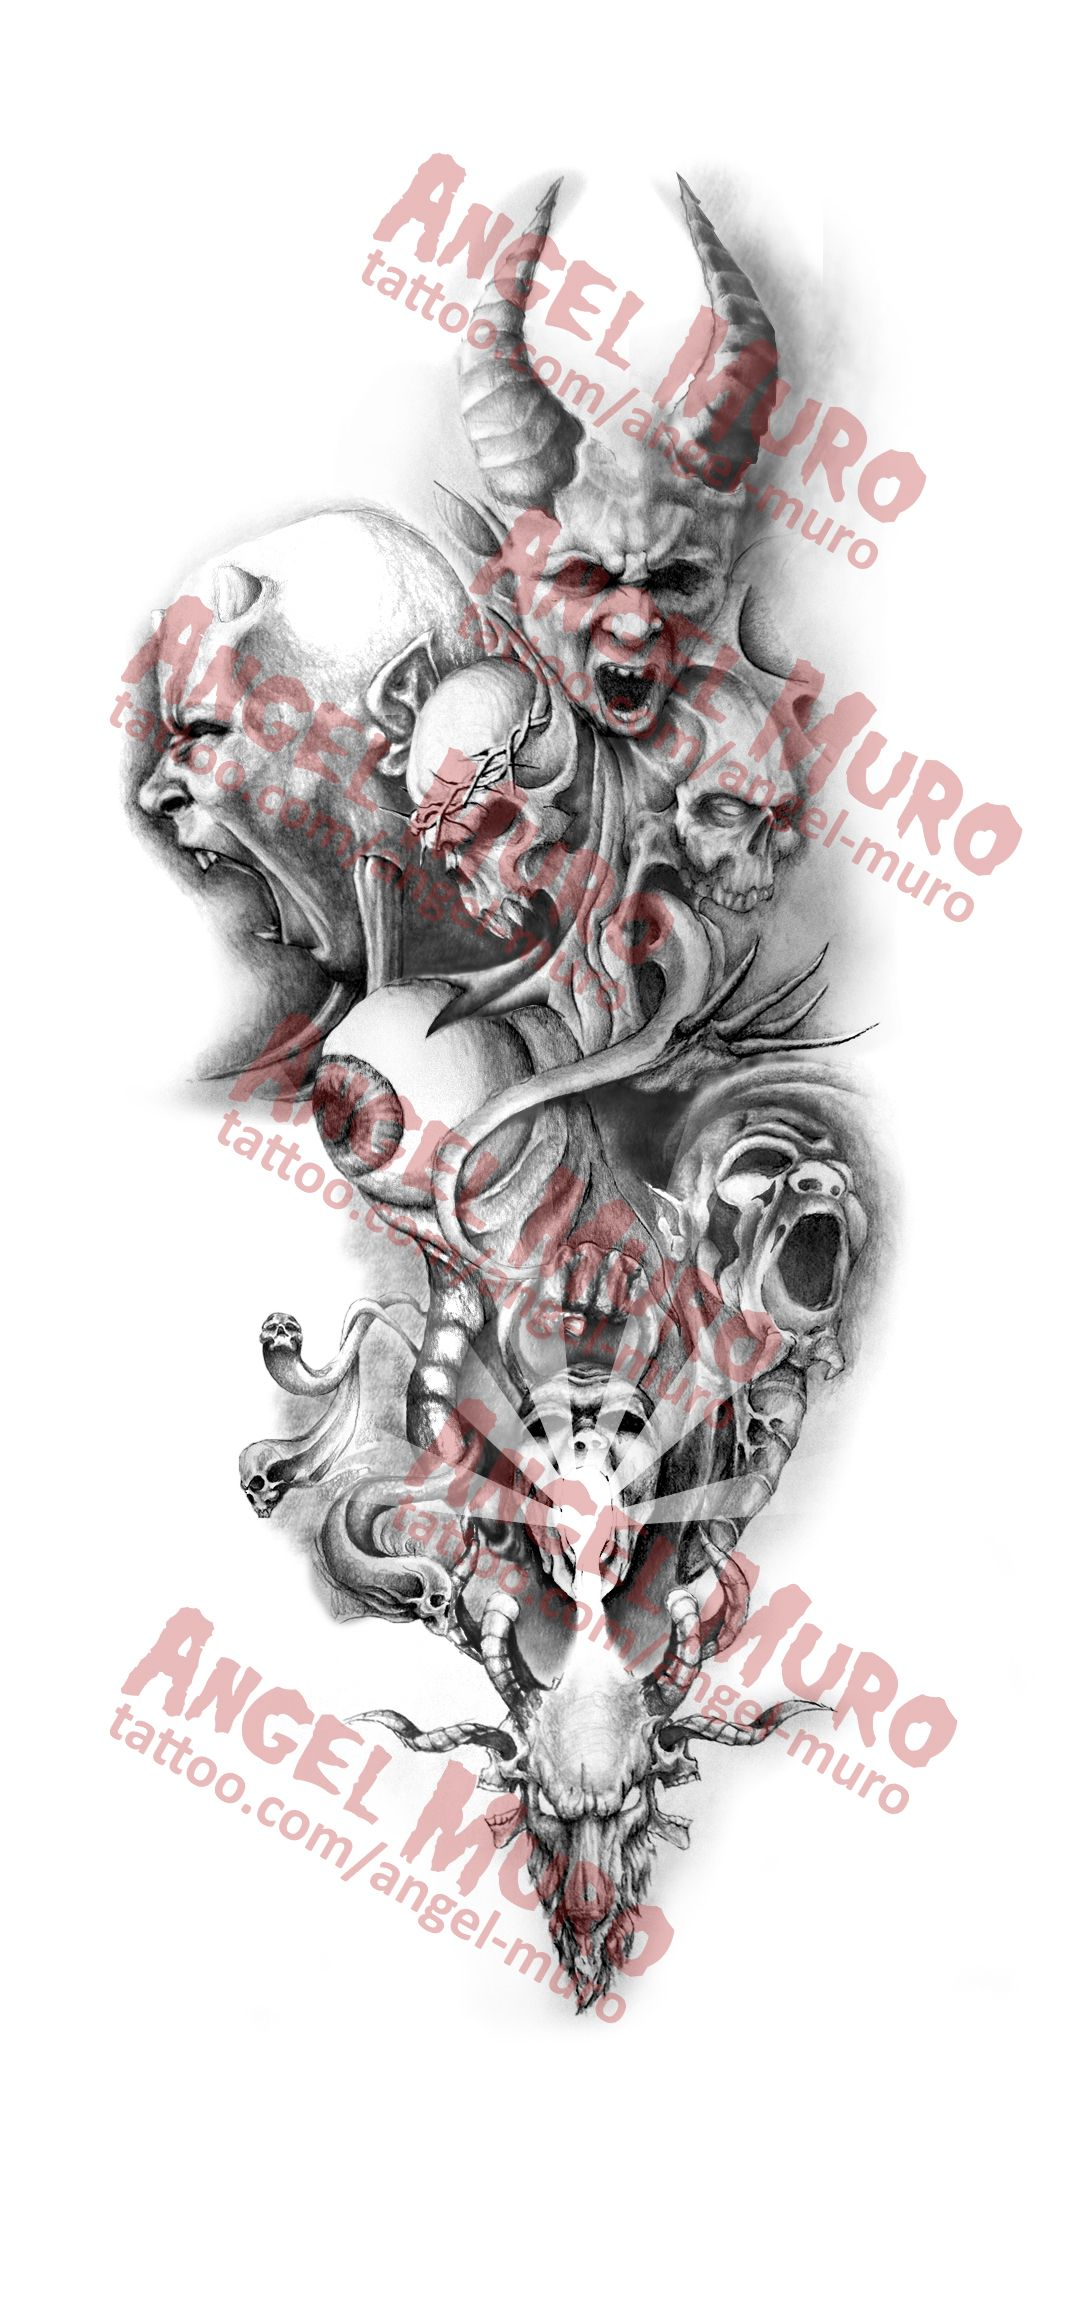 Tattoo Sleeve Drawings Designs: Gallery Images And Information: Sleeve Tattoo Drawing